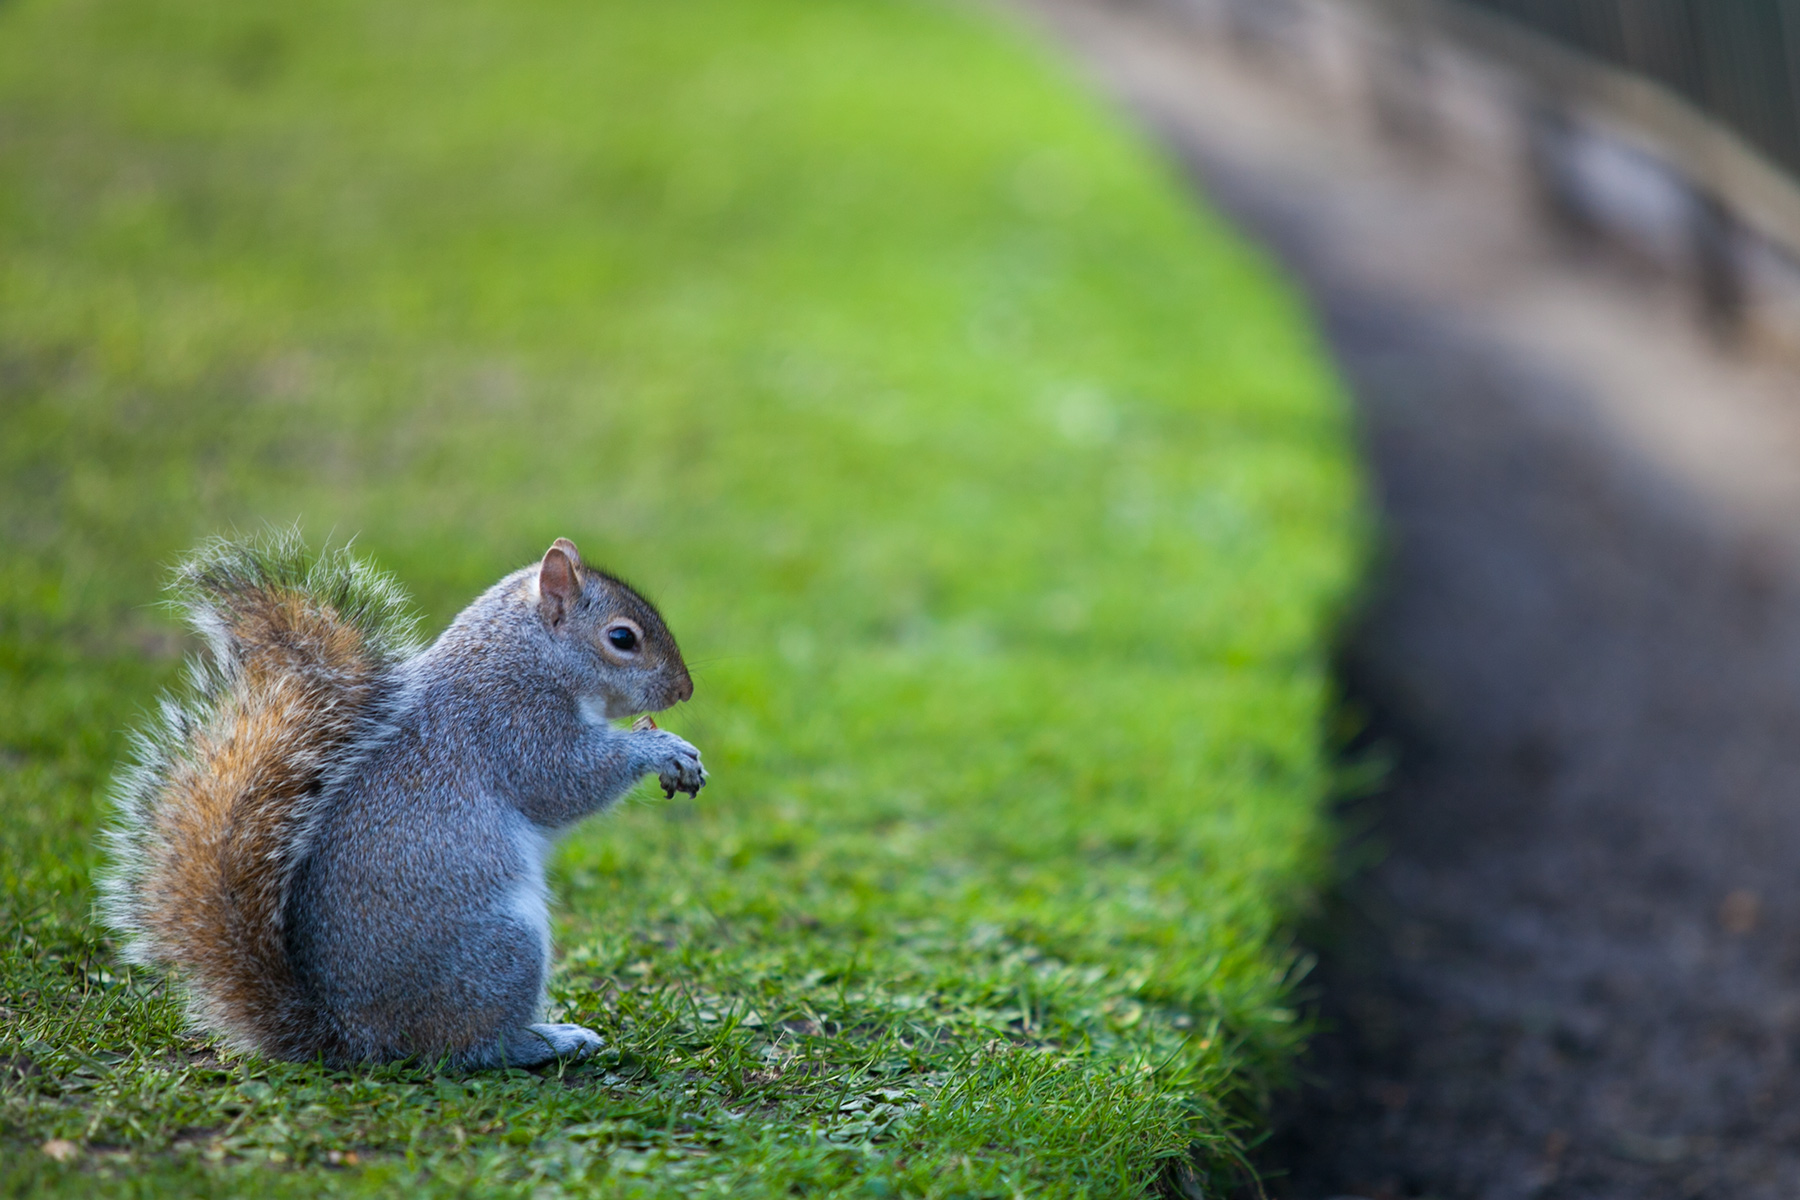 Squirrel in St. James's Park, London